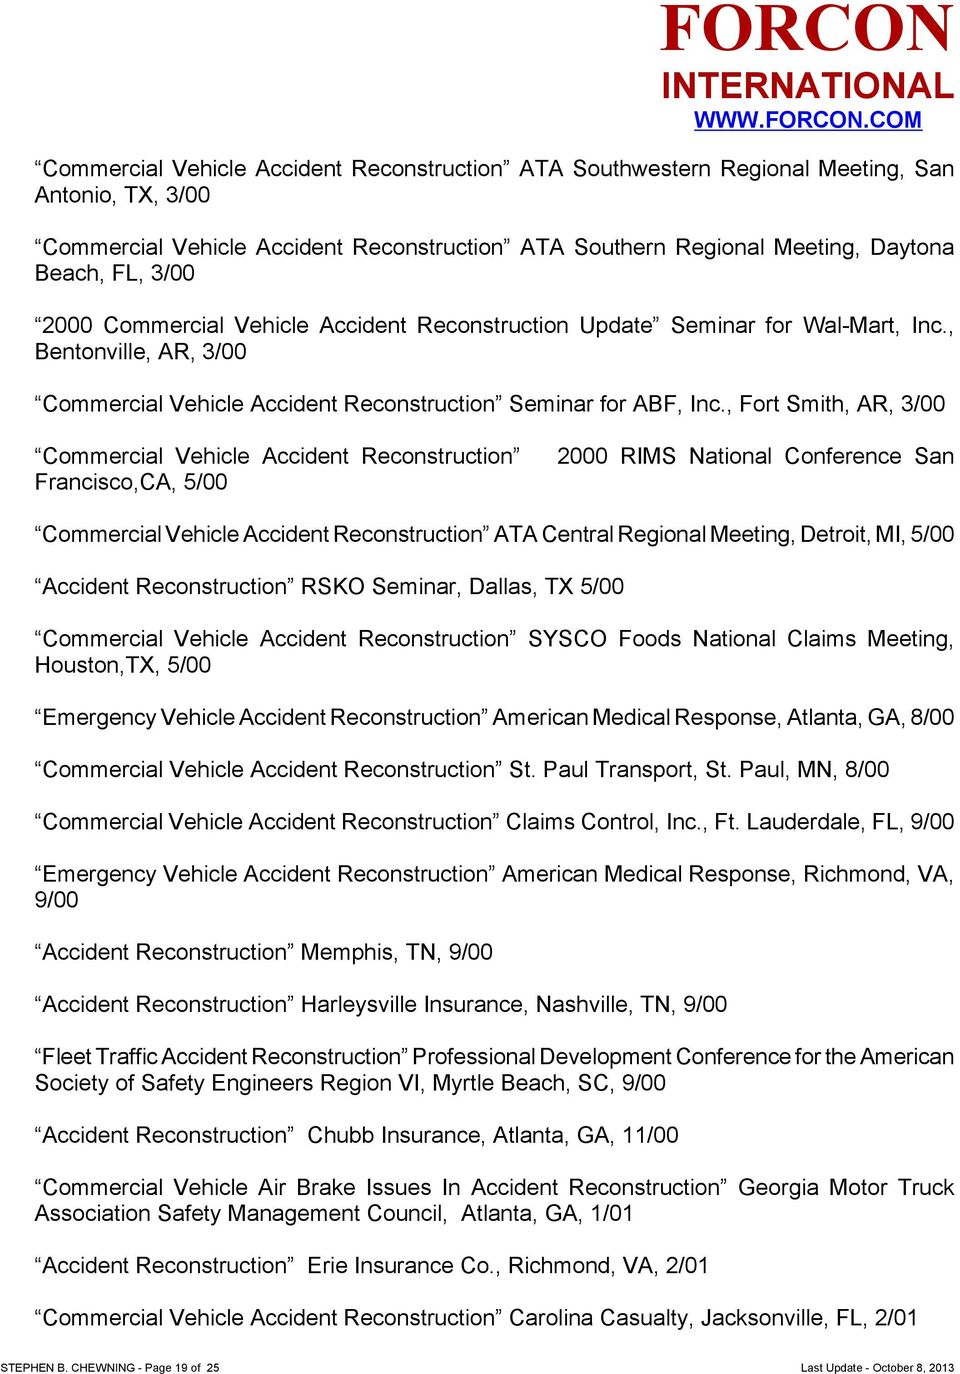 , Fort Smith, AR, 3/00 Commercial Vehicle Accident Reconstruction Francisco,CA, 5/00 2000 RIMS National Conference San Commercial Vehicle Accident Reconstruction ATA Central Regional Meeting,